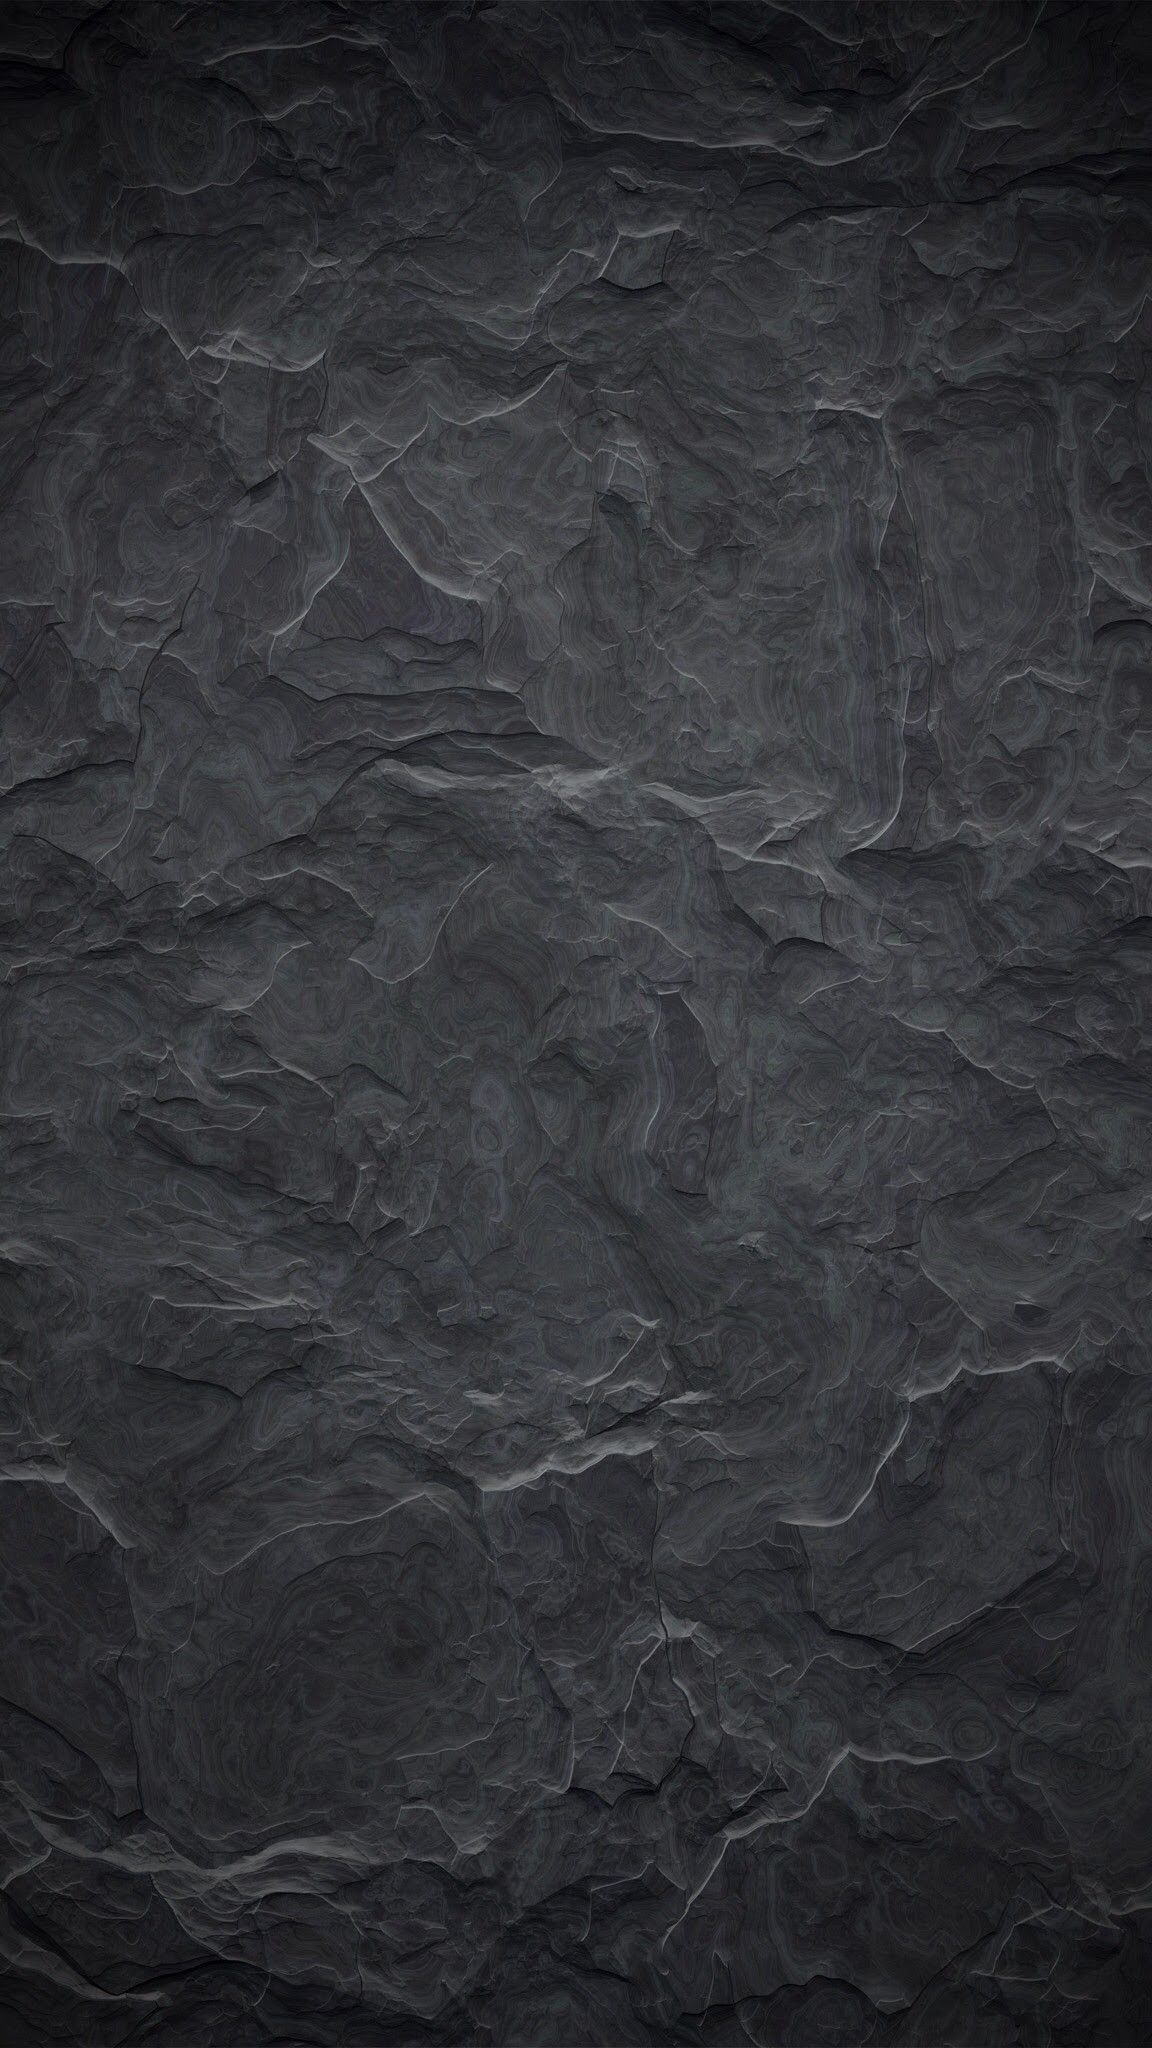 Pin by zryan on Android wallpapers Black background